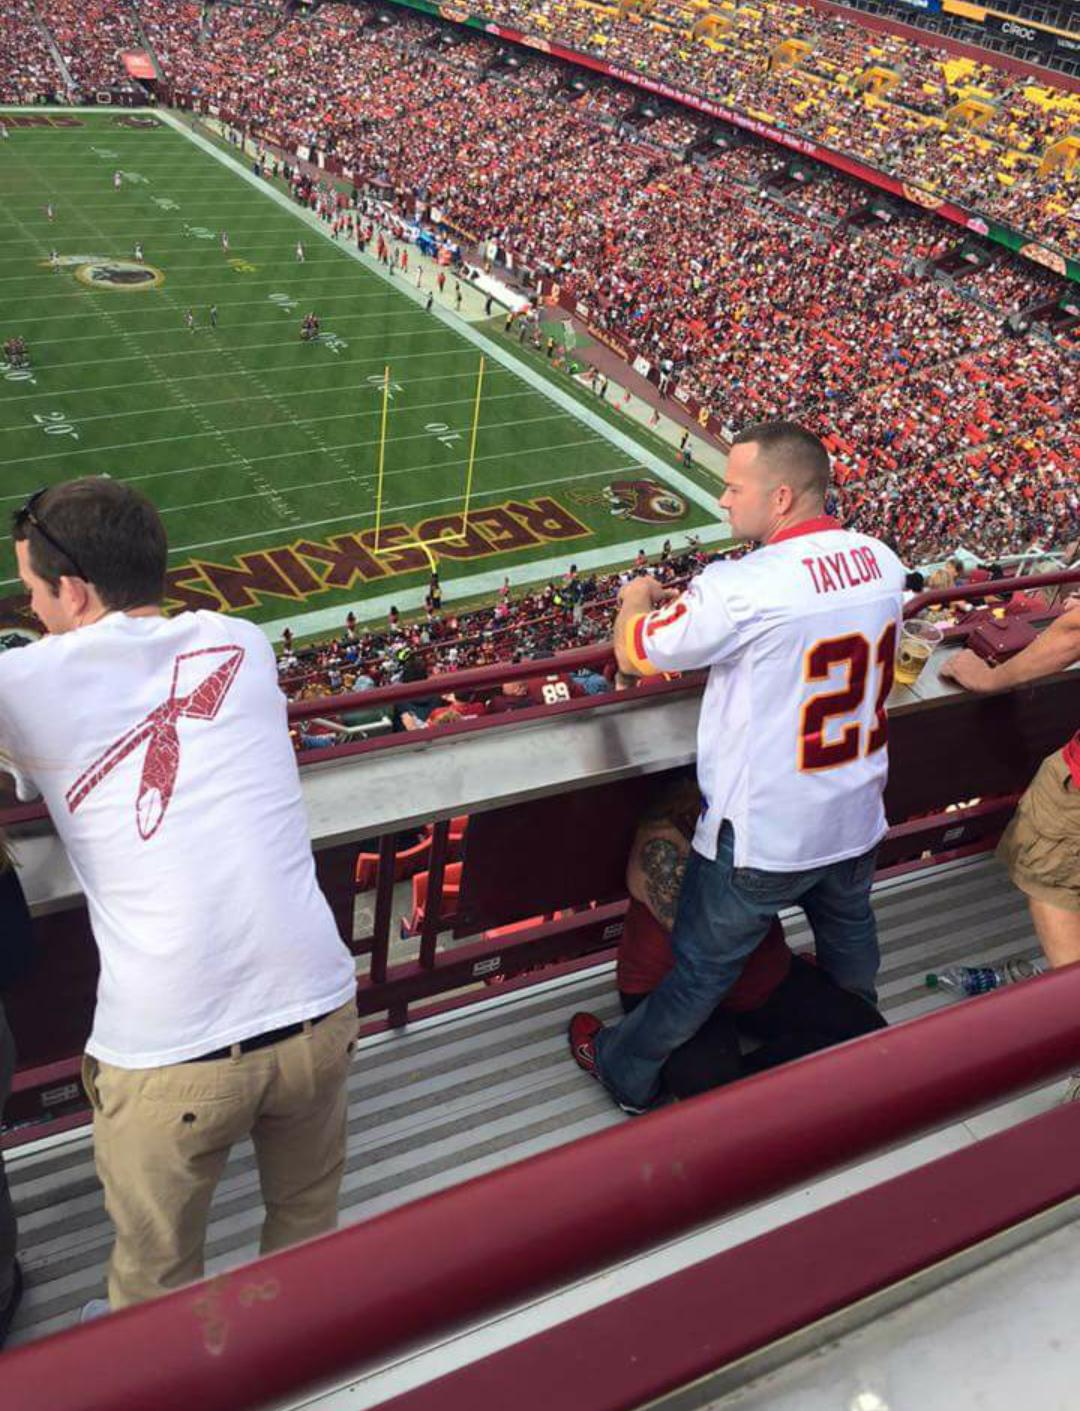 UNILAD US9t0Db 161462 NSFW Photo Of Man (And Wife) At Football Game Goes Viral